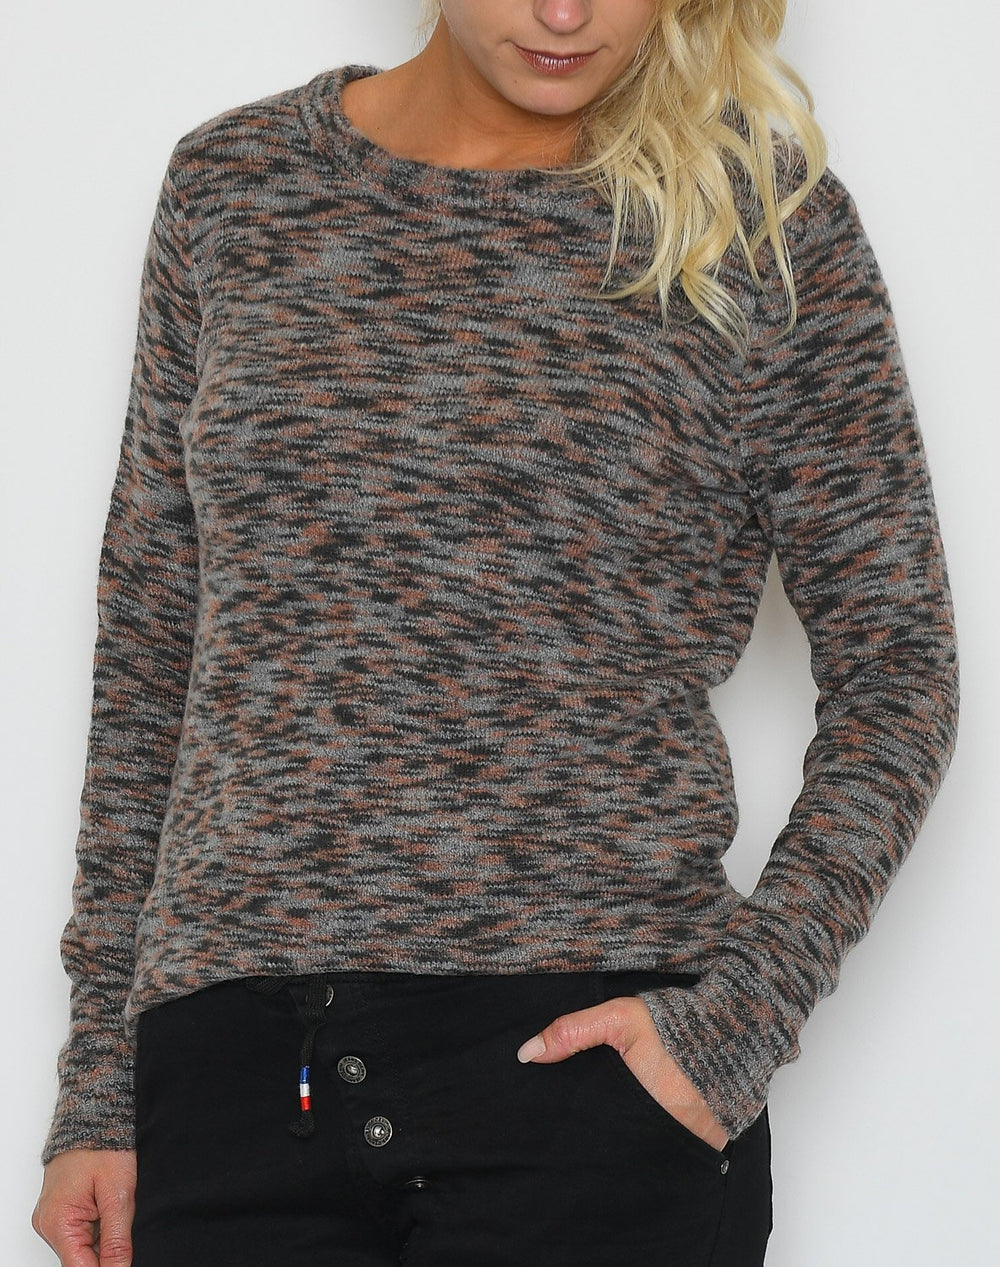 Soya Bernadet 1 bluse brown mix - Online-Mode